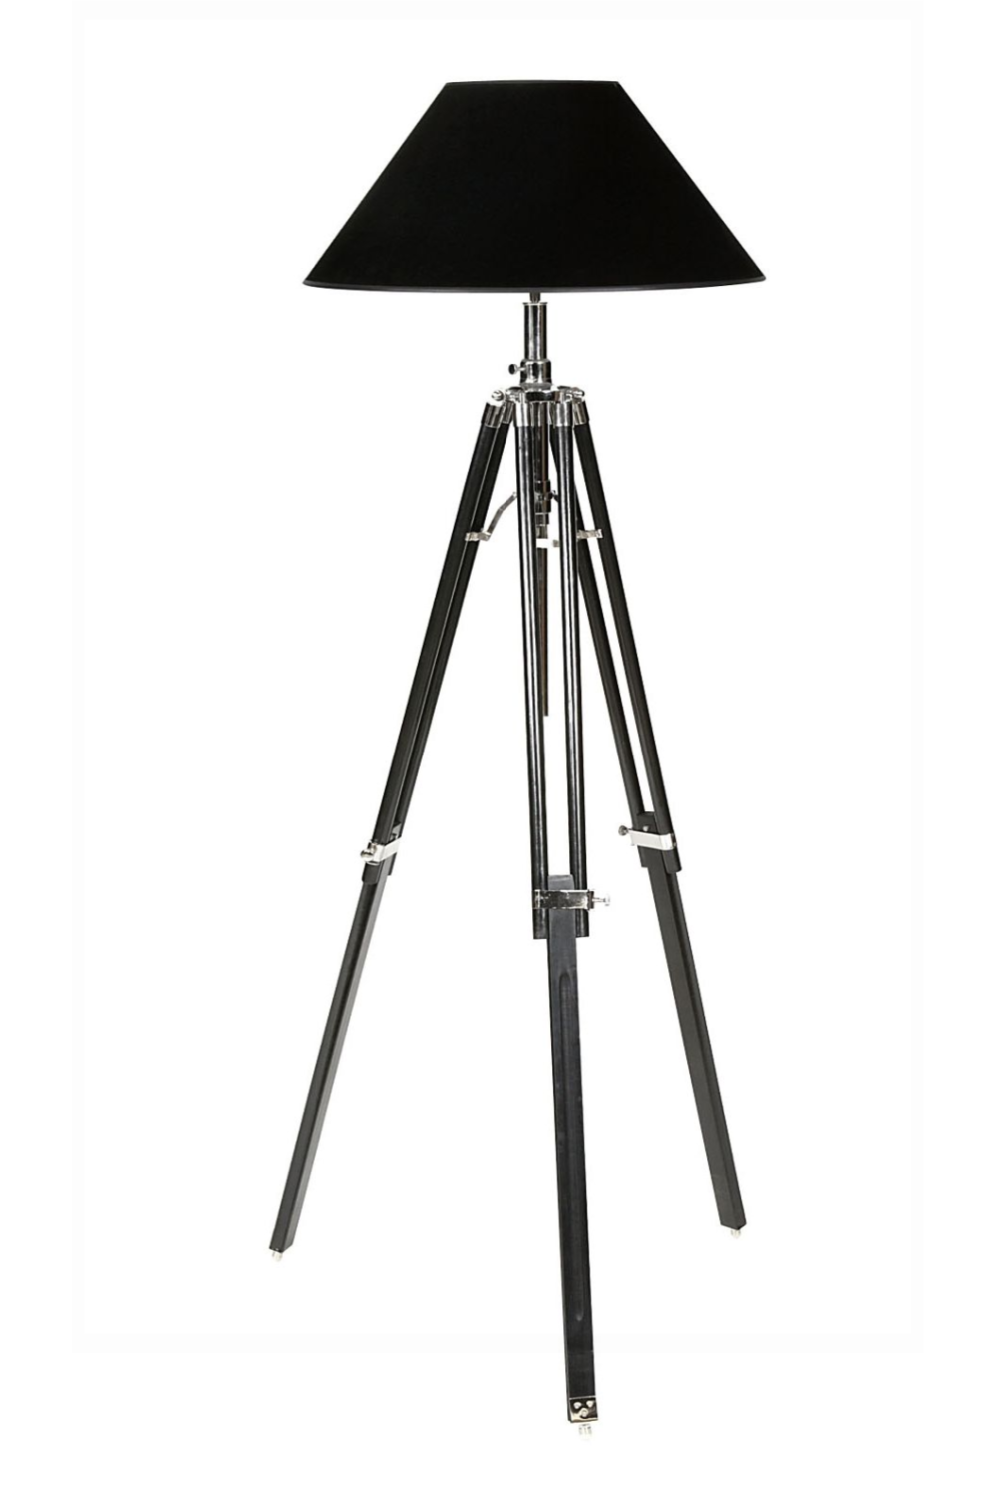 Black Tripod Floor Lamp | Eichholtz Telescope